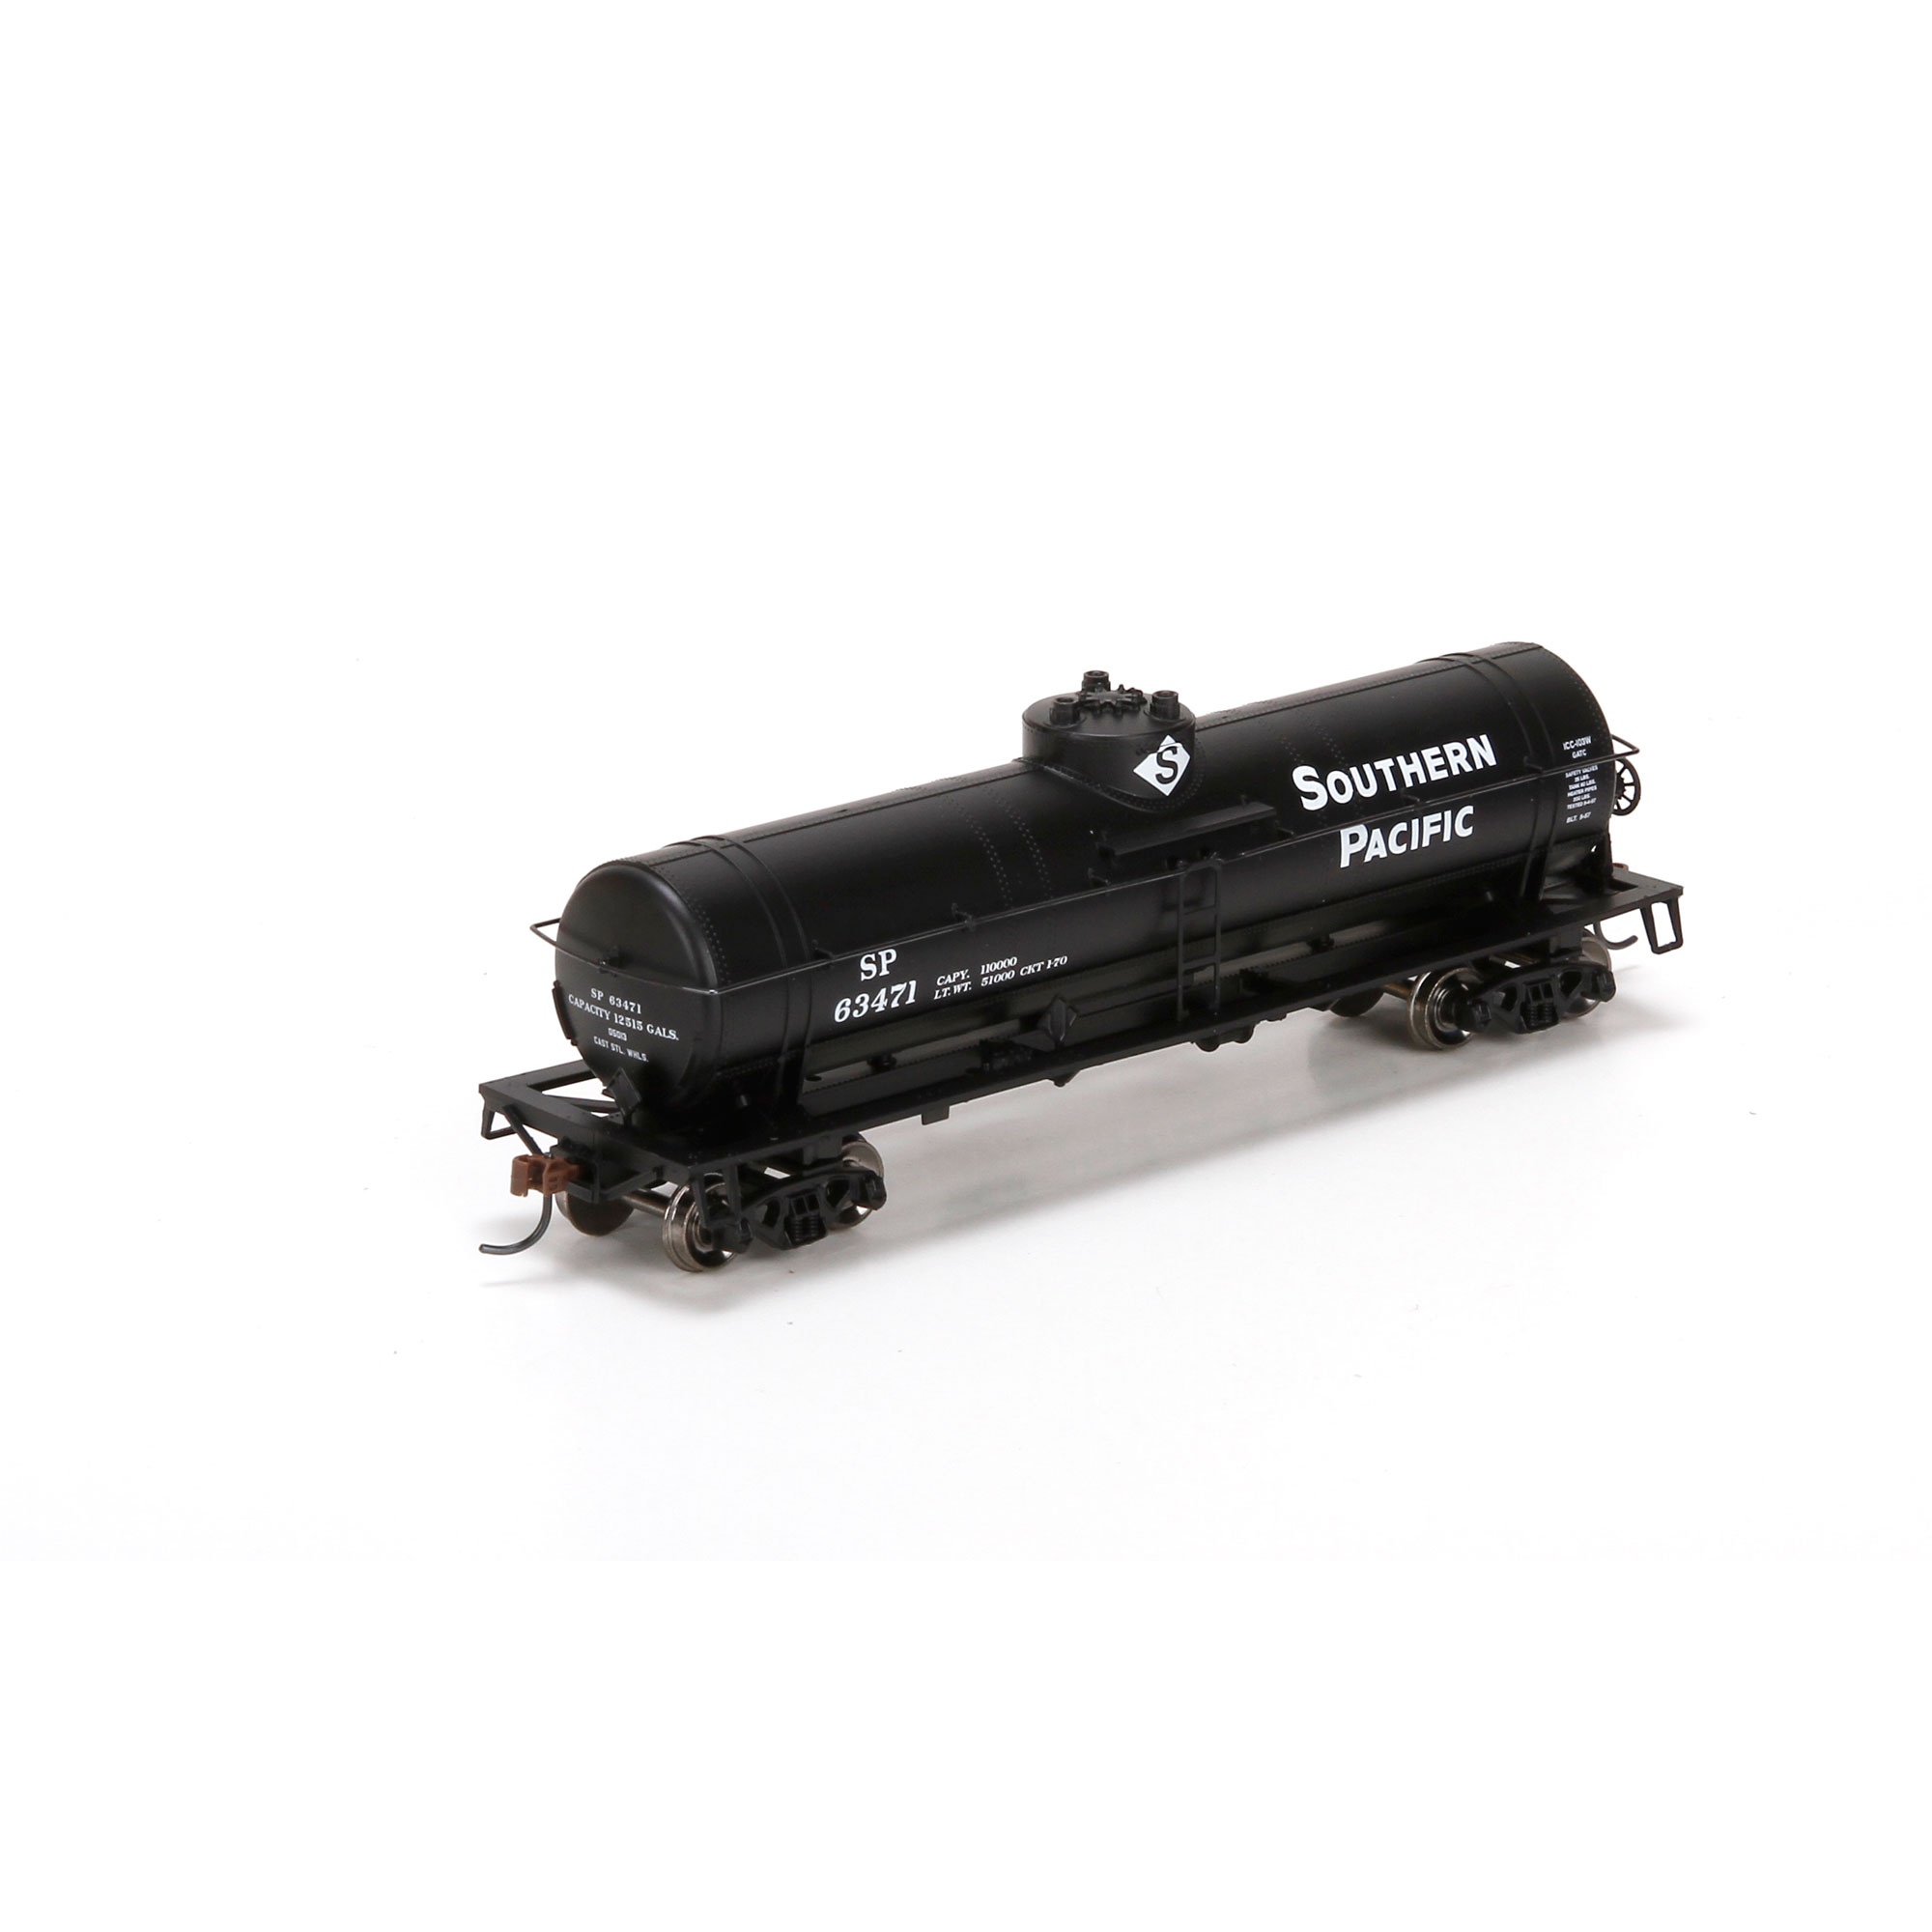 southern pacific railroad single dome chemical tank car 63471 athearn 76701 ebay. Black Bedroom Furniture Sets. Home Design Ideas